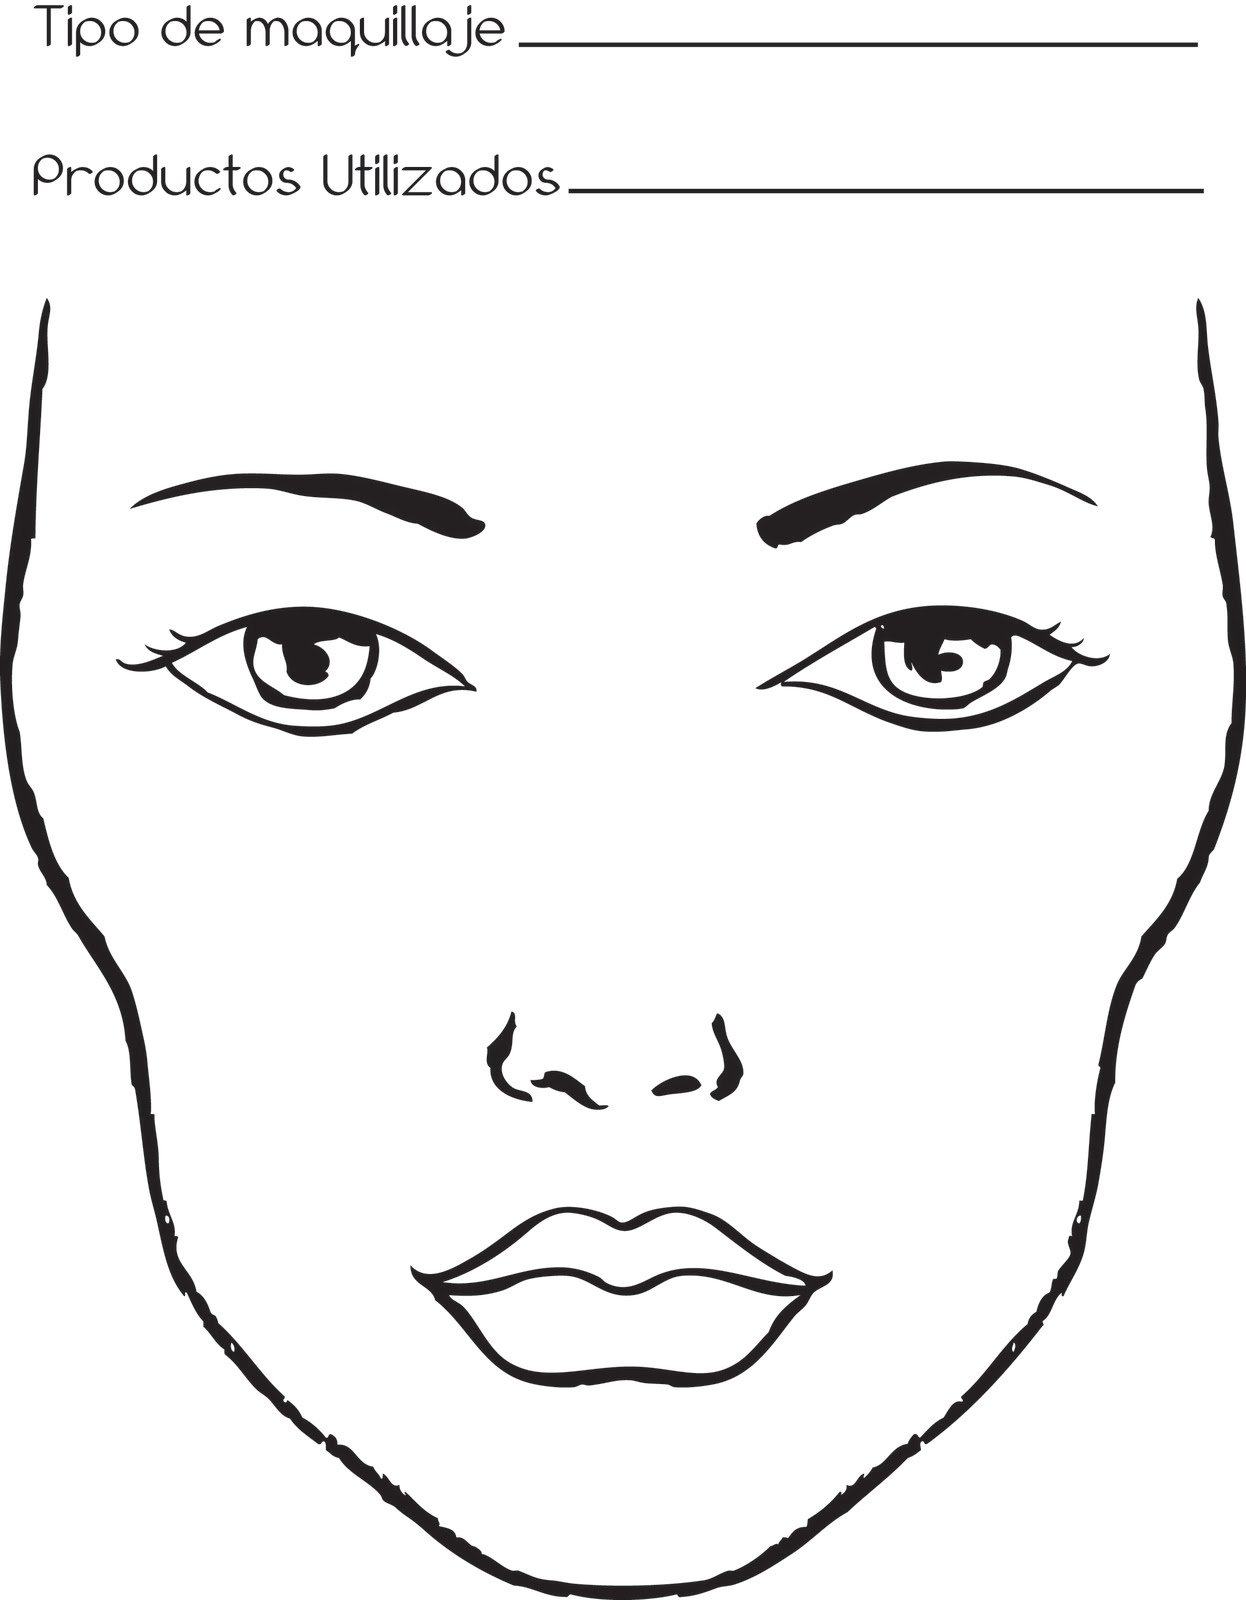 Todo lo imaginable es posible face chart for Papel para dibujar